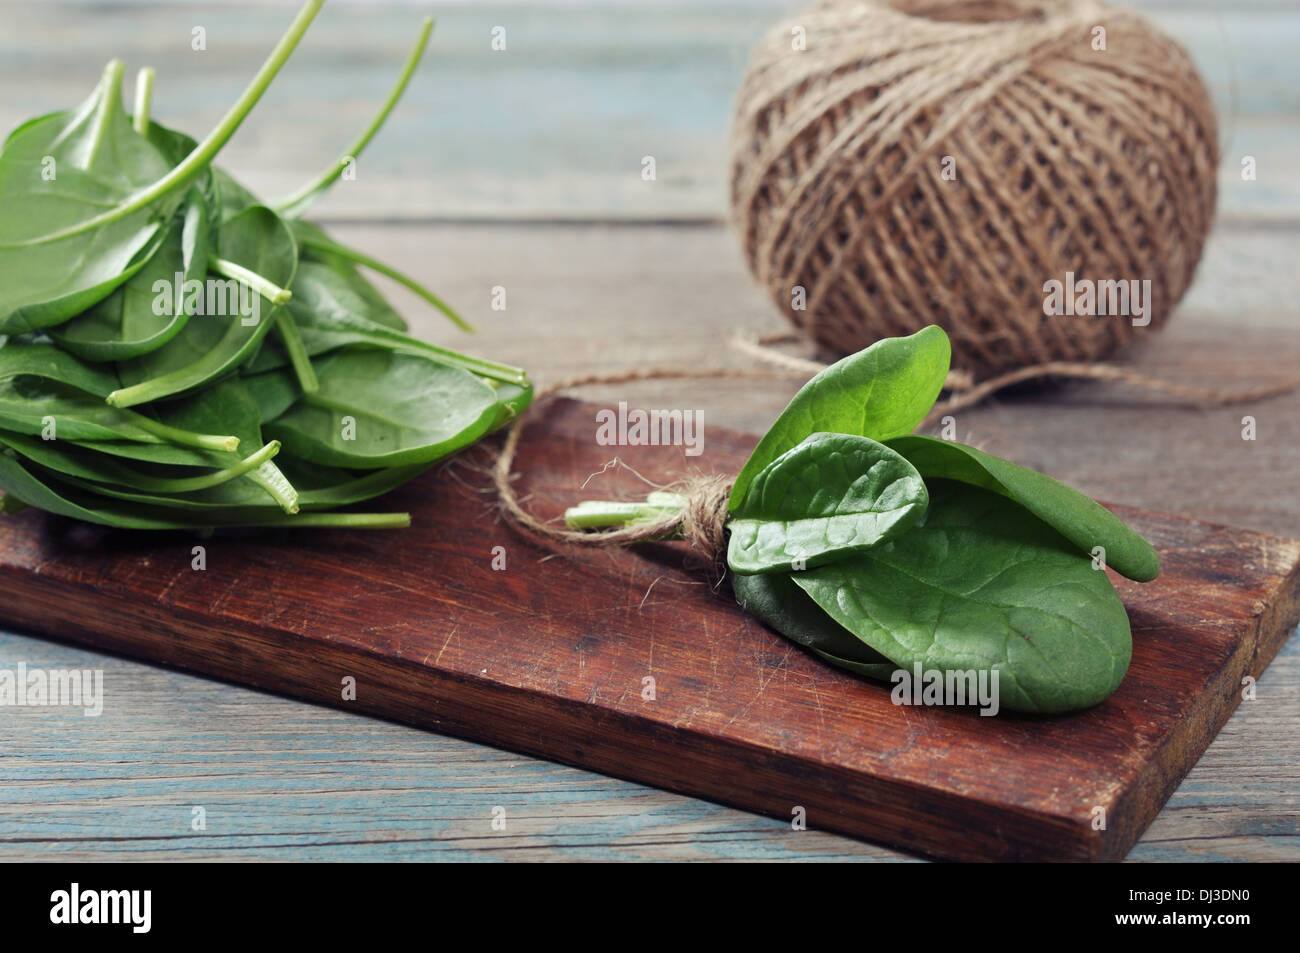 Fresh spinach leaves on wooden cutting board closeup - Stock Image